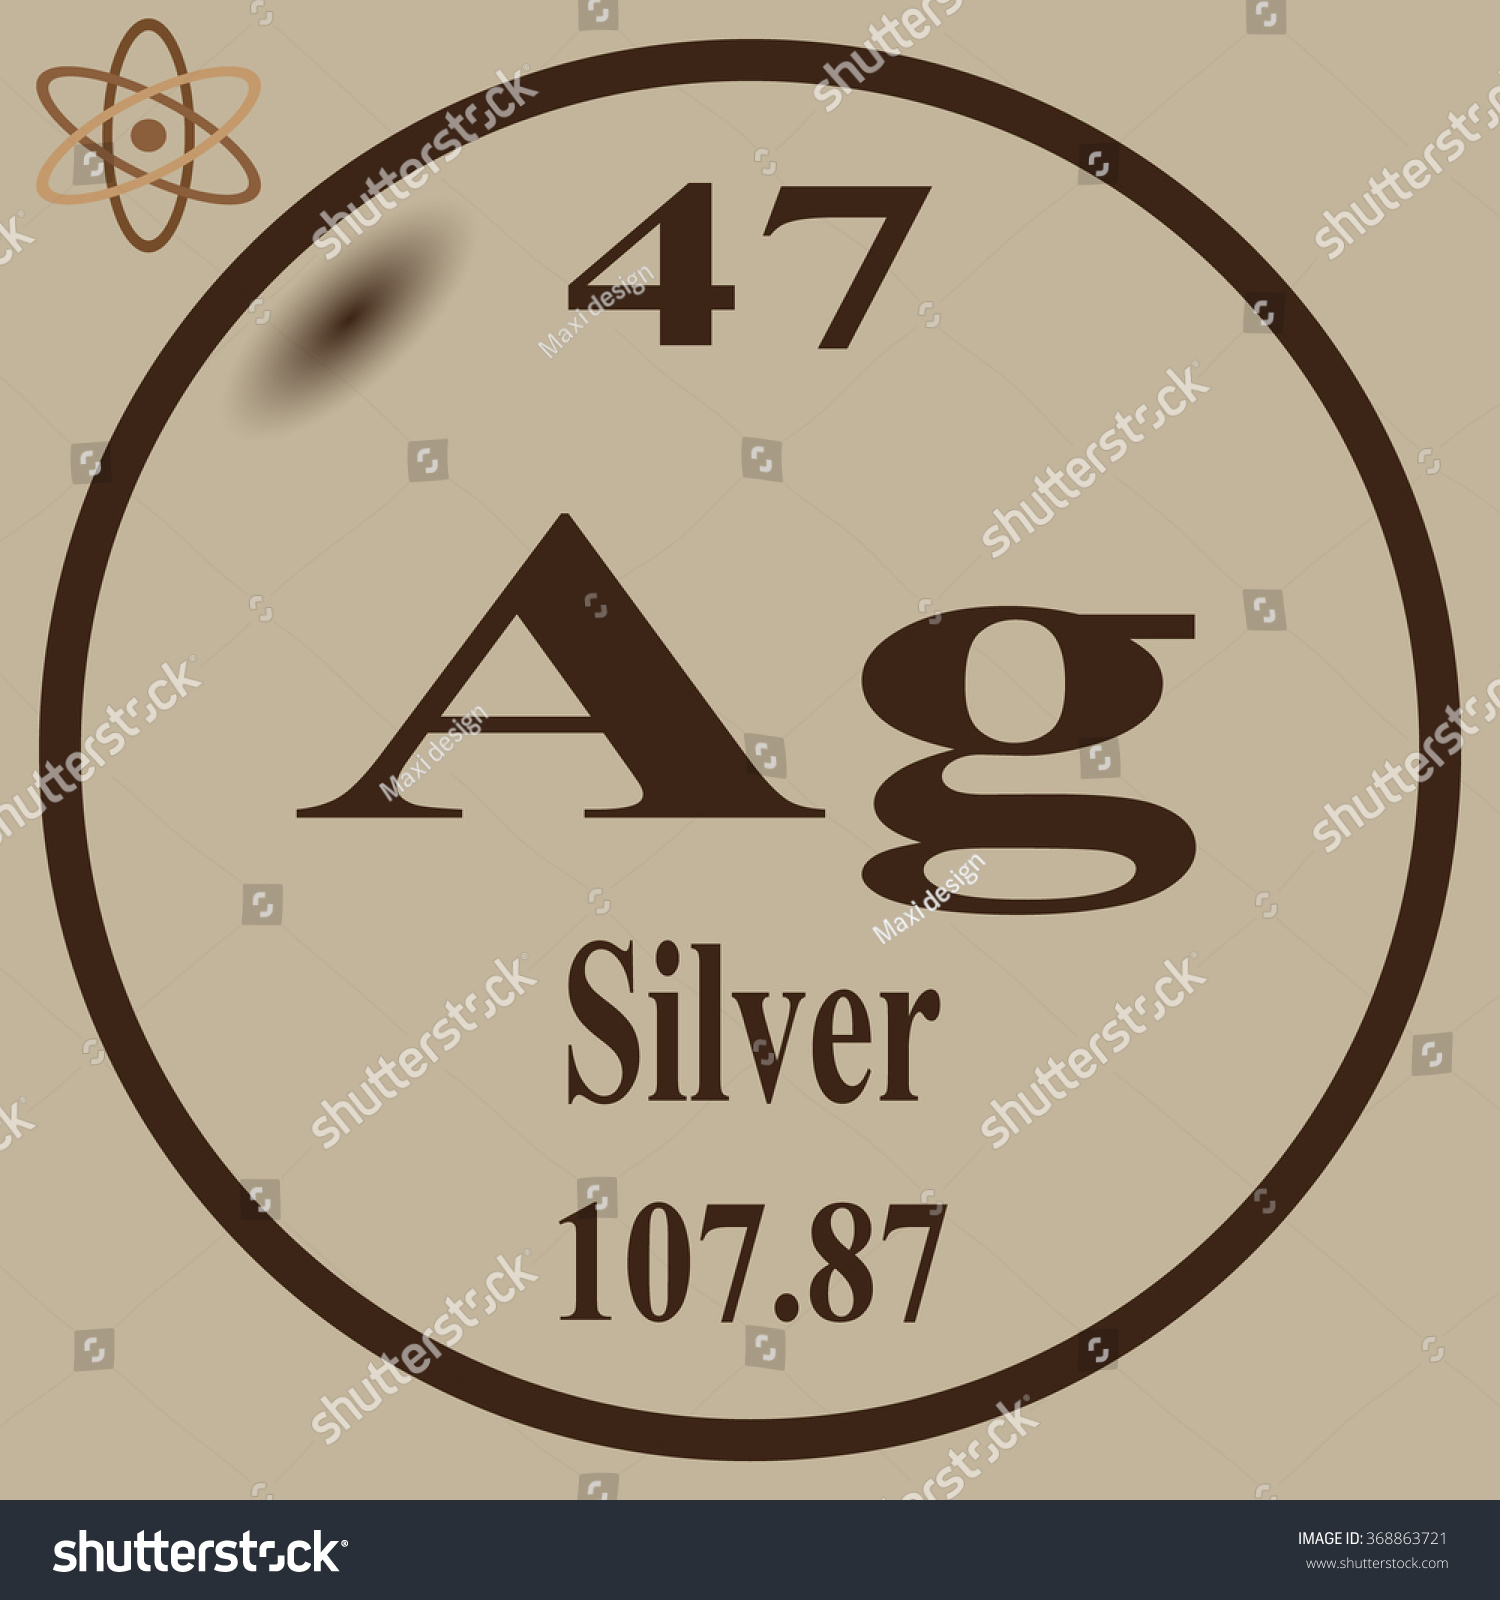 Silver symbol periodic table gallery periodic table images periodic table symbol for silver gallery periodic table images silver symbol periodic table choice image periodic gamestrikefo Choice Image